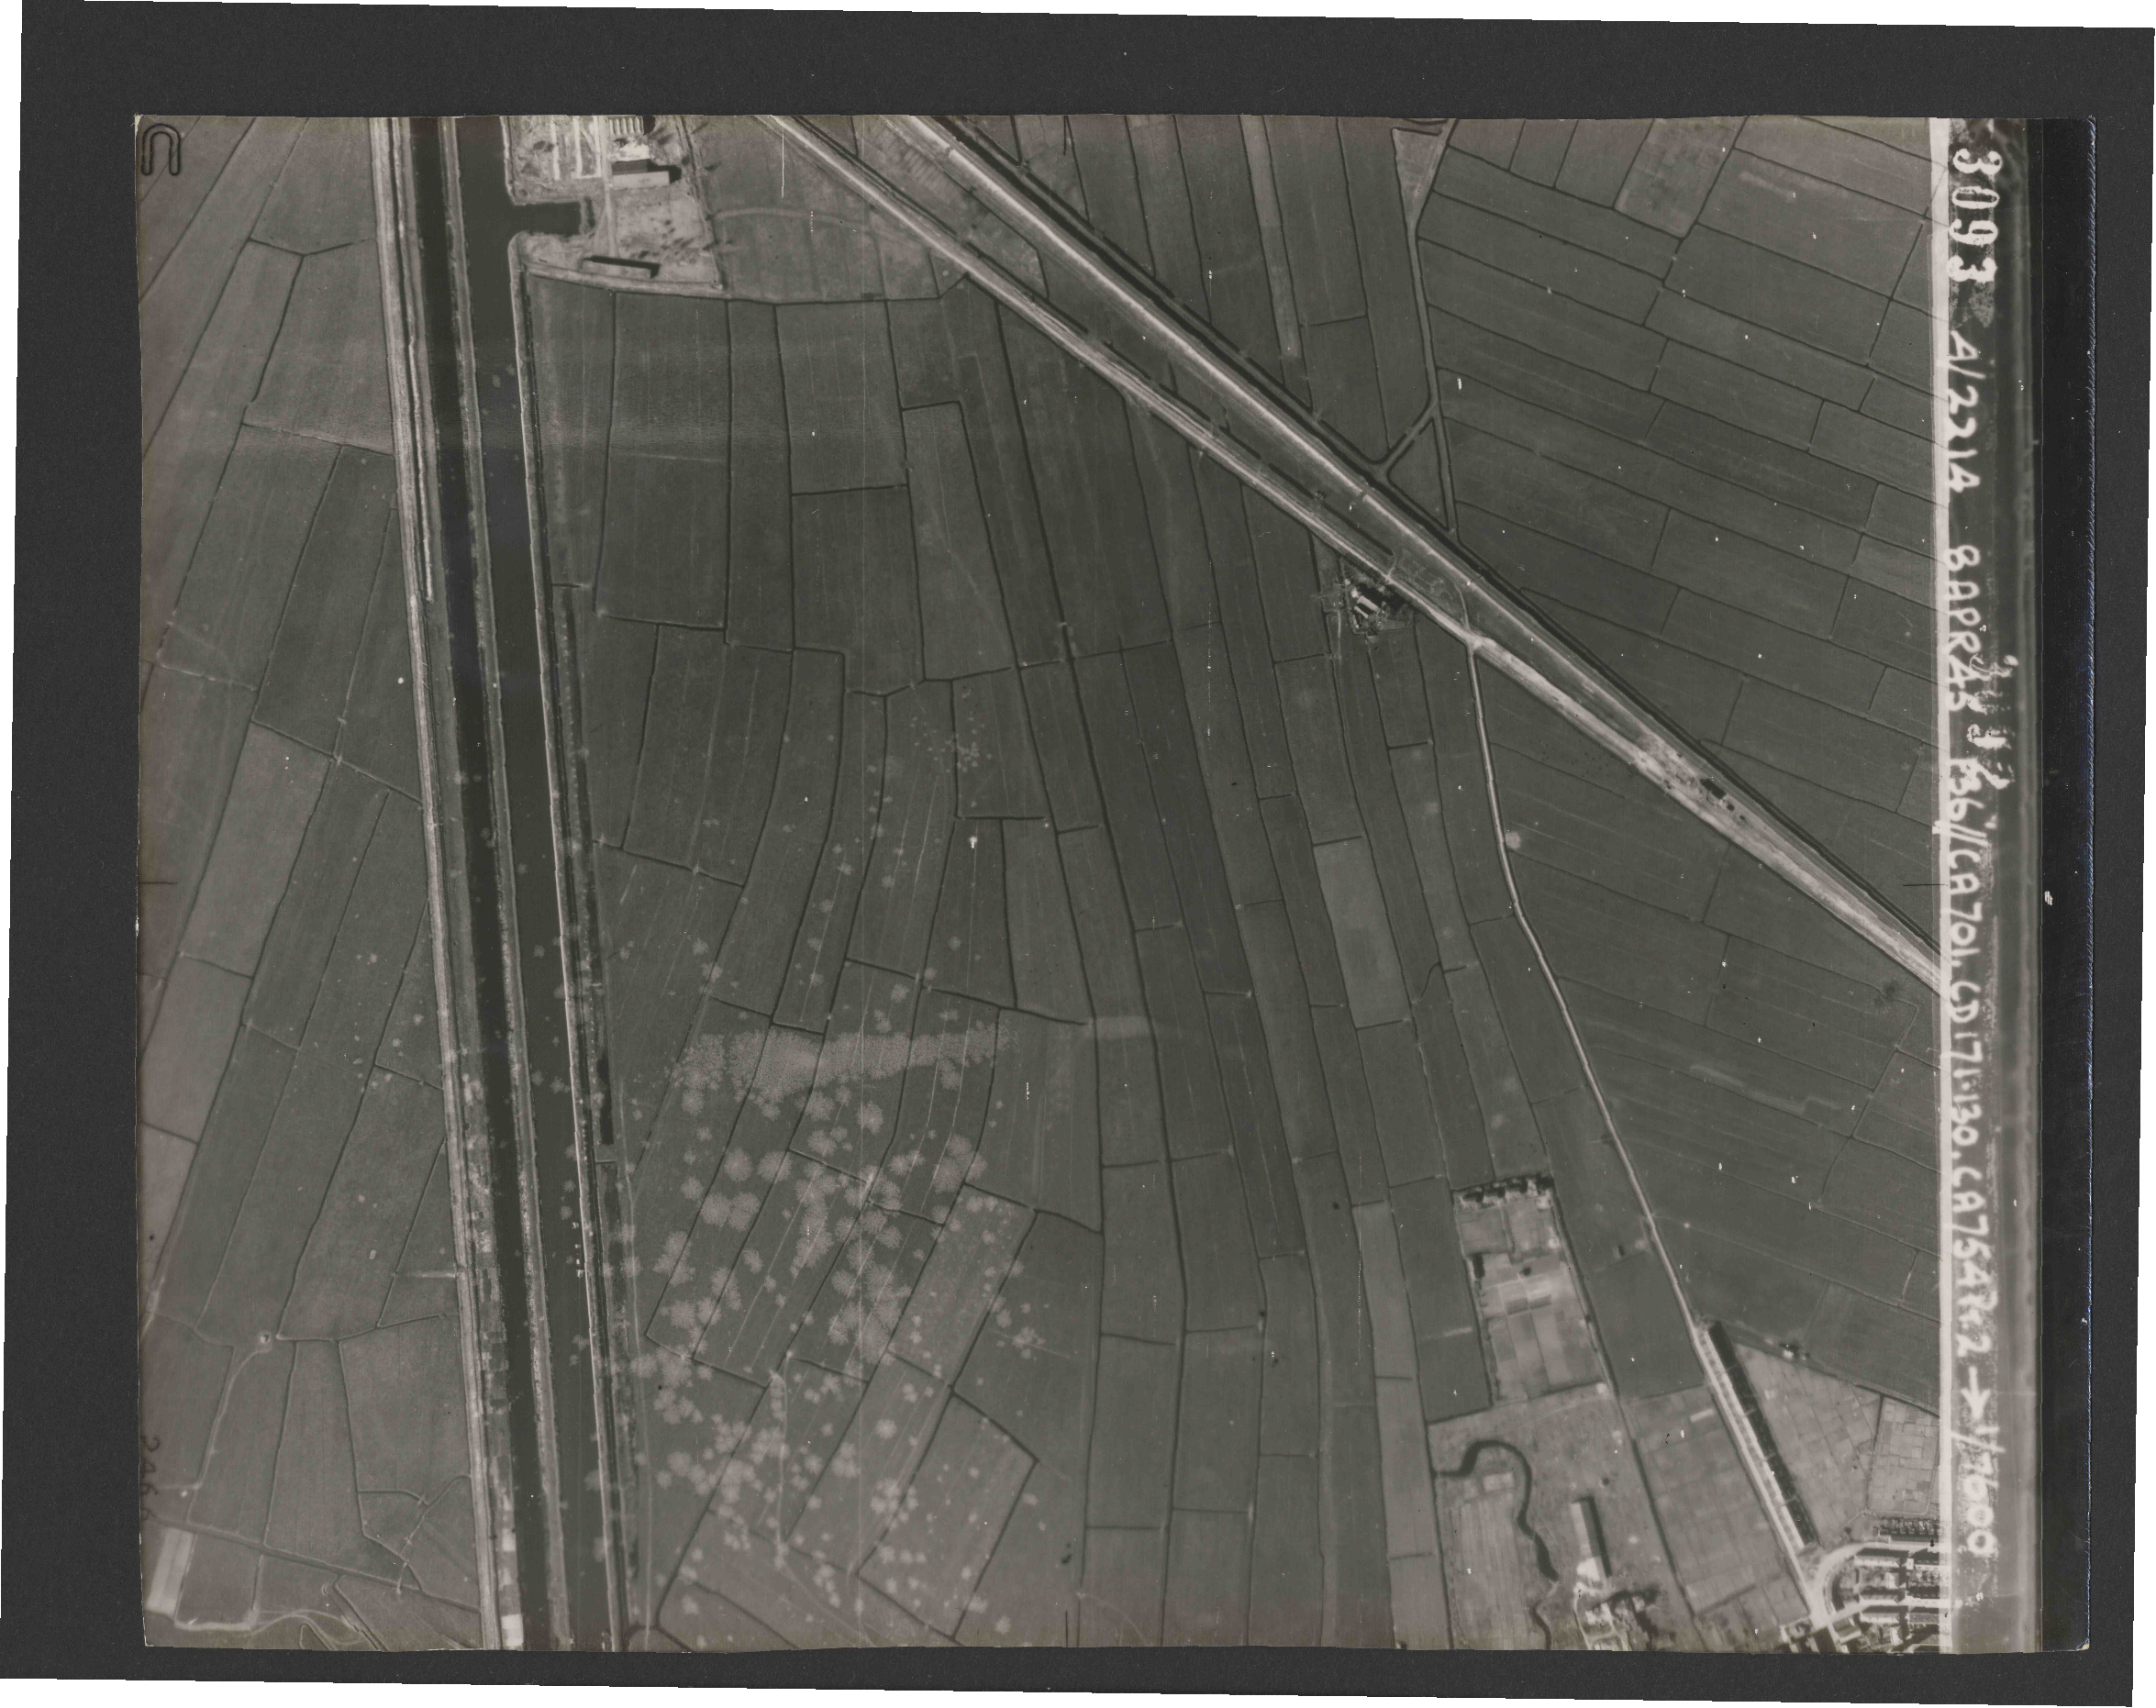 Collection RAF aerial photos 1940-1945 - flight 123, run 04, photo 3093